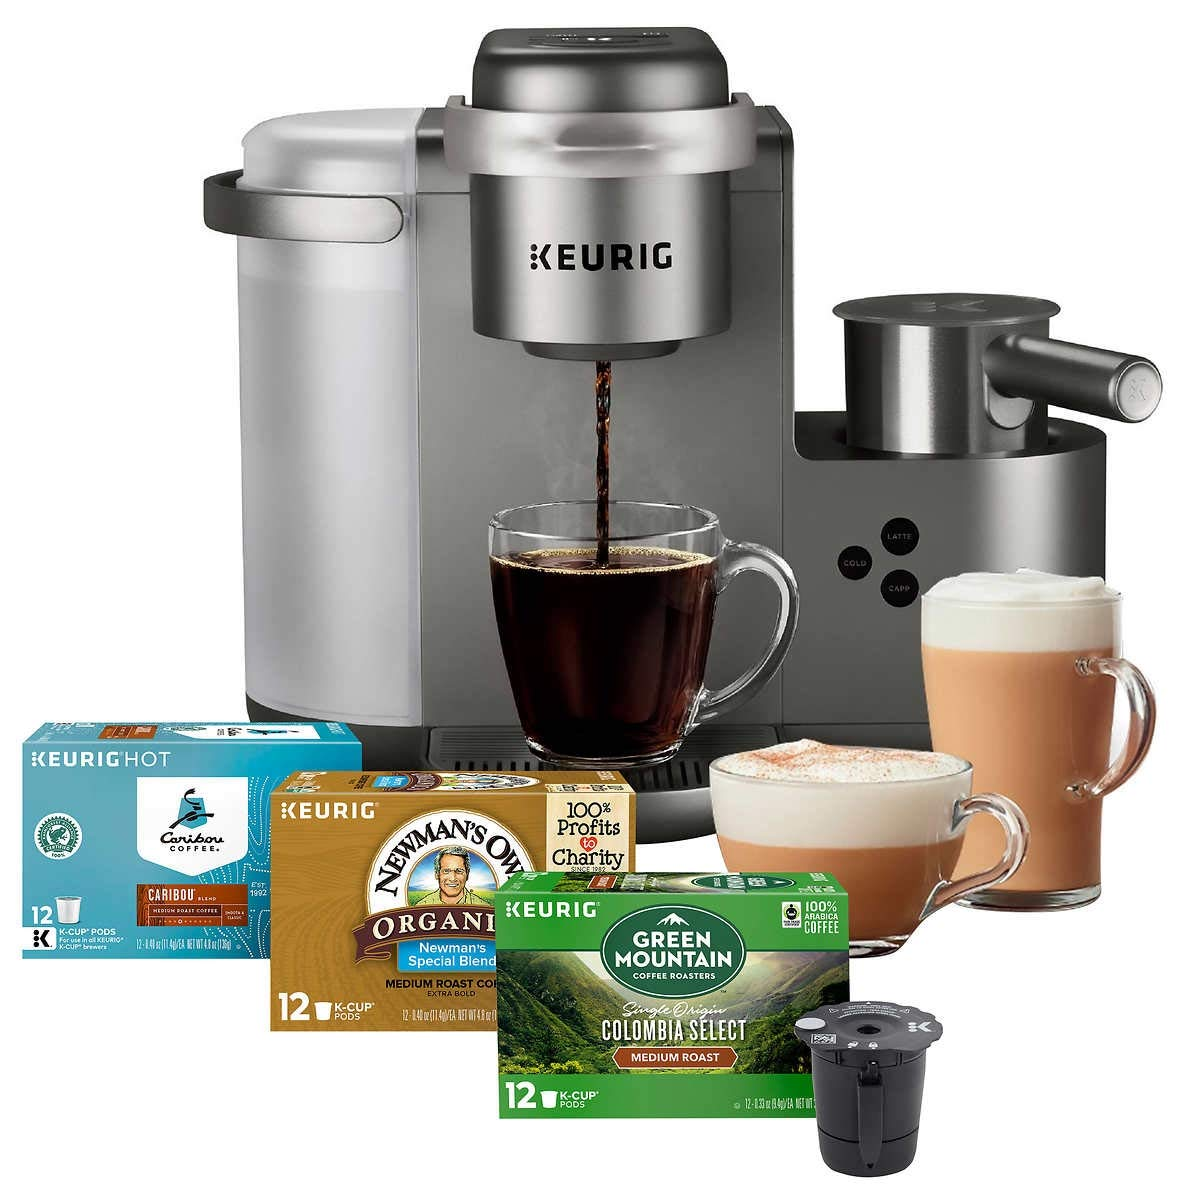 Keurig K-Cafe C Single Serve K-Cup Pod Coffee, Latte and Cappuccino Maker, Nickel by Keurig